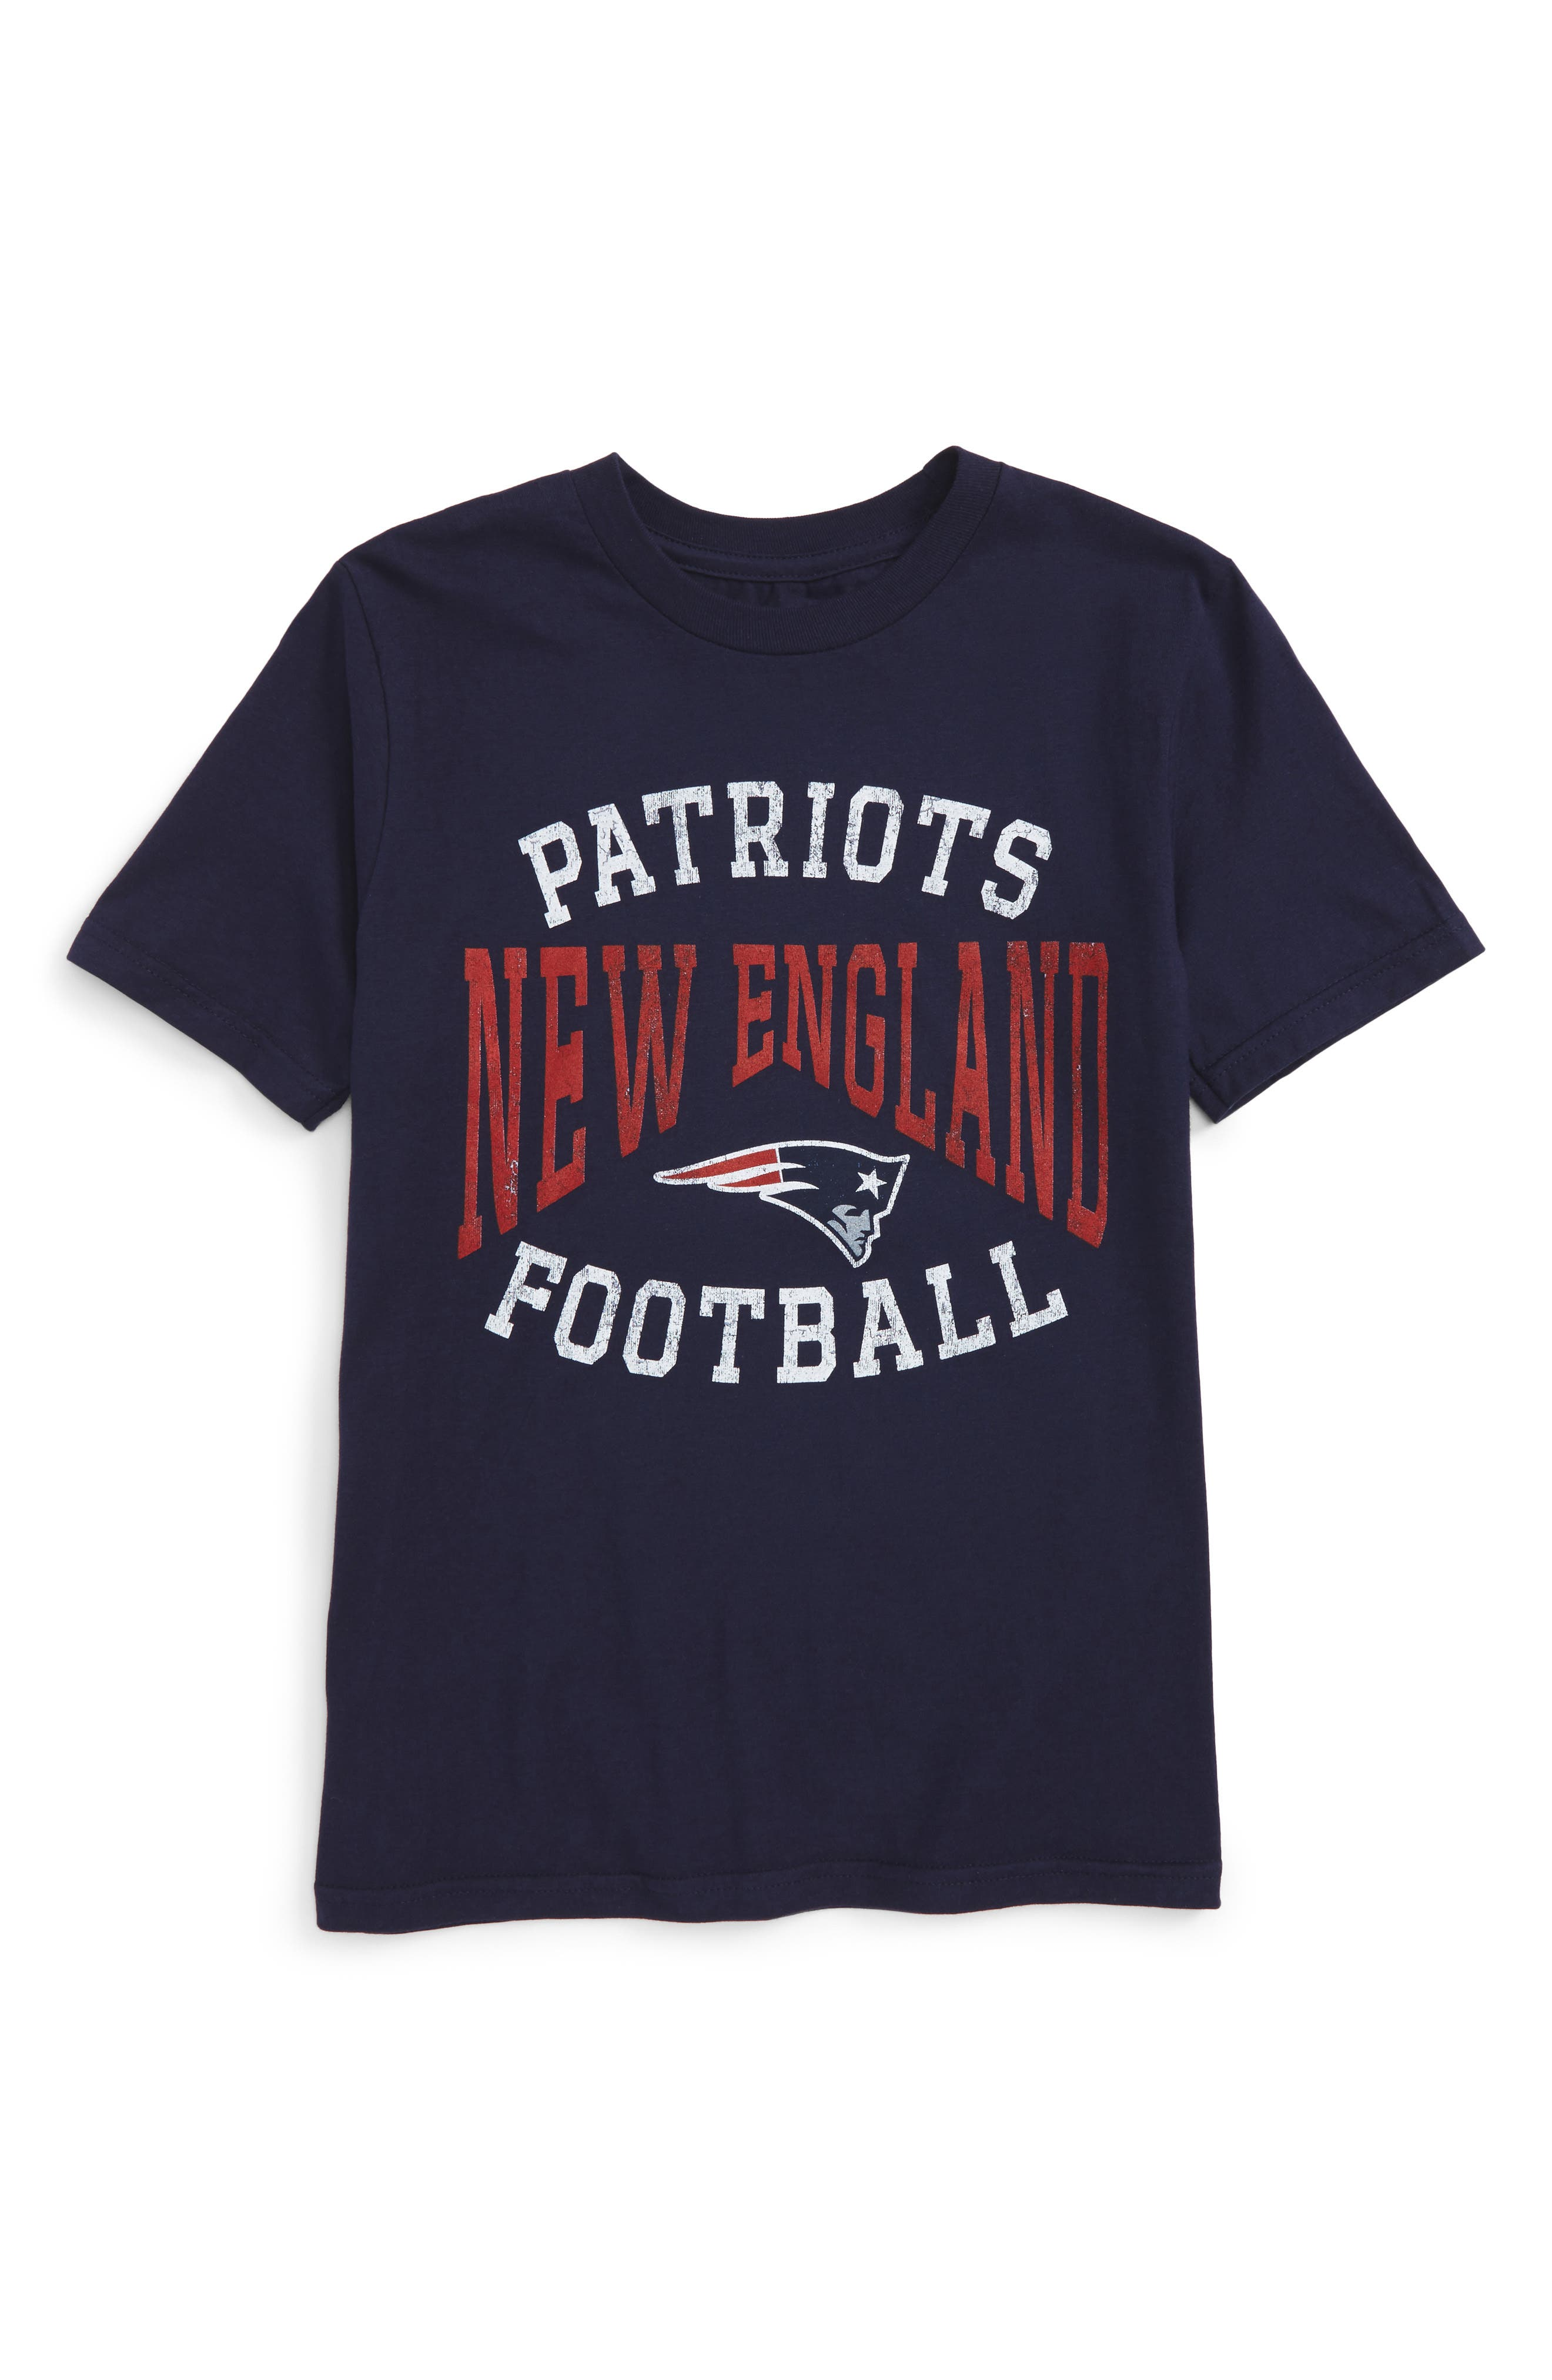 NFL New England Patriots Greatness Graphic T-Shirt,                             Main thumbnail 1, color,                             400